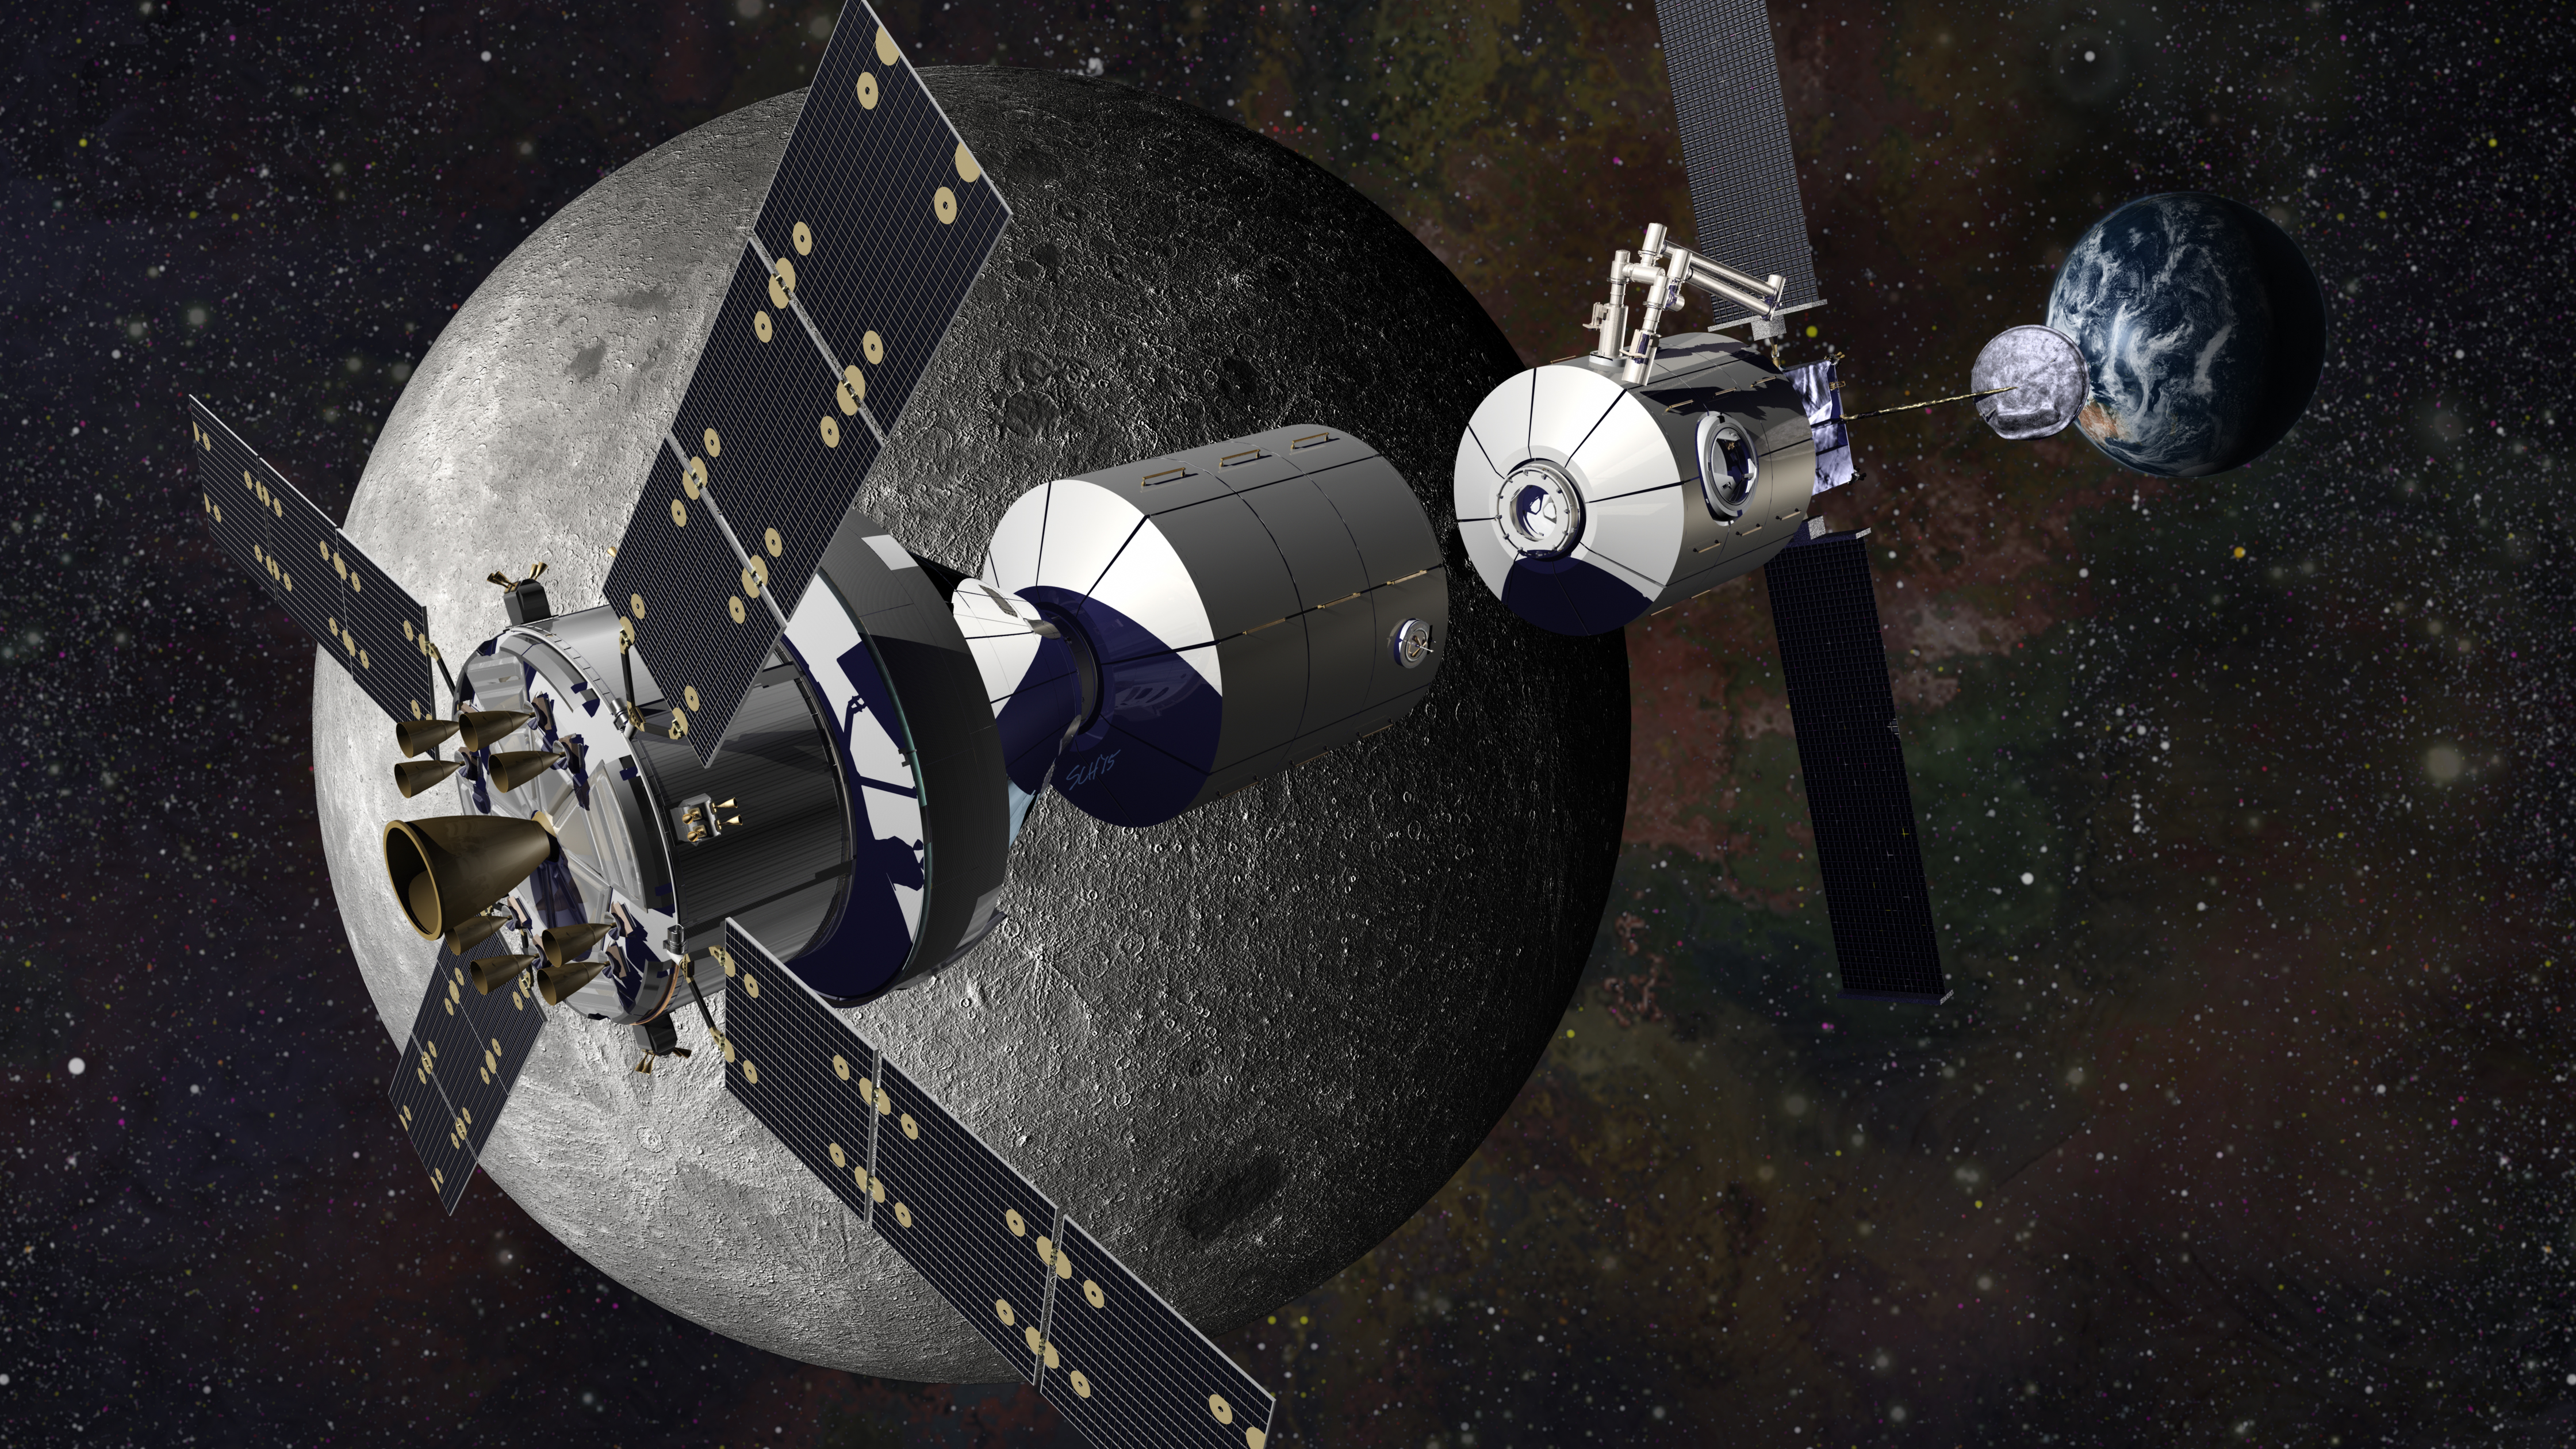 Plans Being Devised for Human Outpost Near the Moon